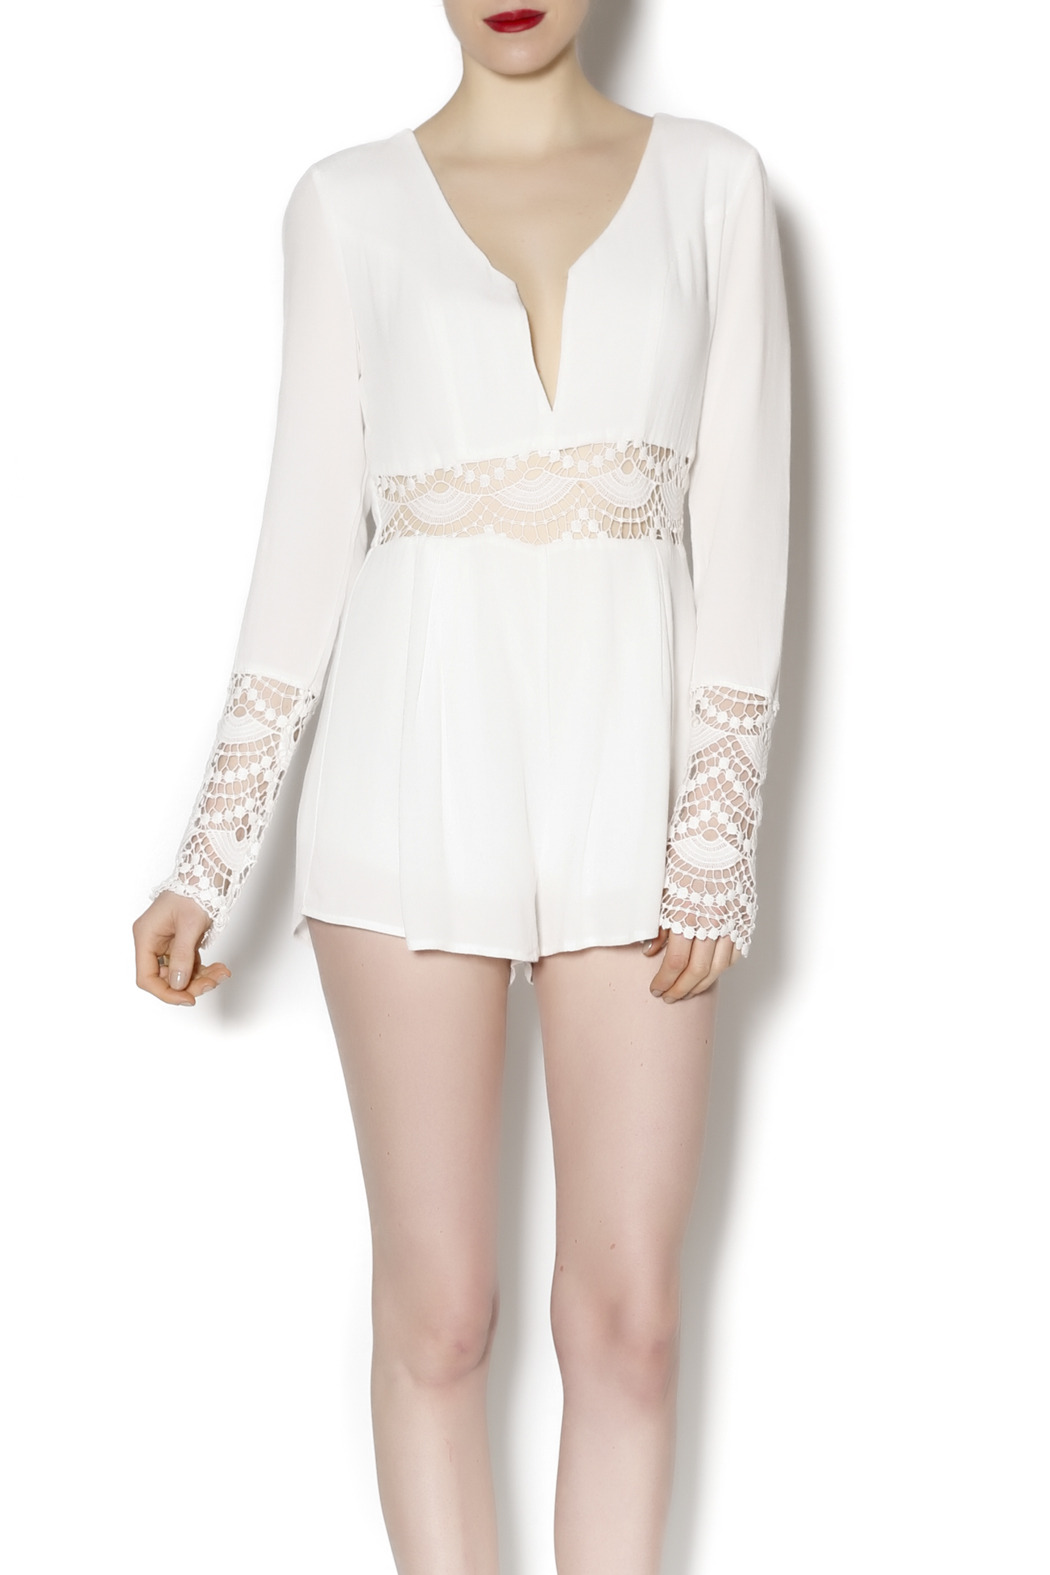 8bbe6c78ee1 Honey Punch White Crochet Romper from New York by Dor L Dor — Shoptiques